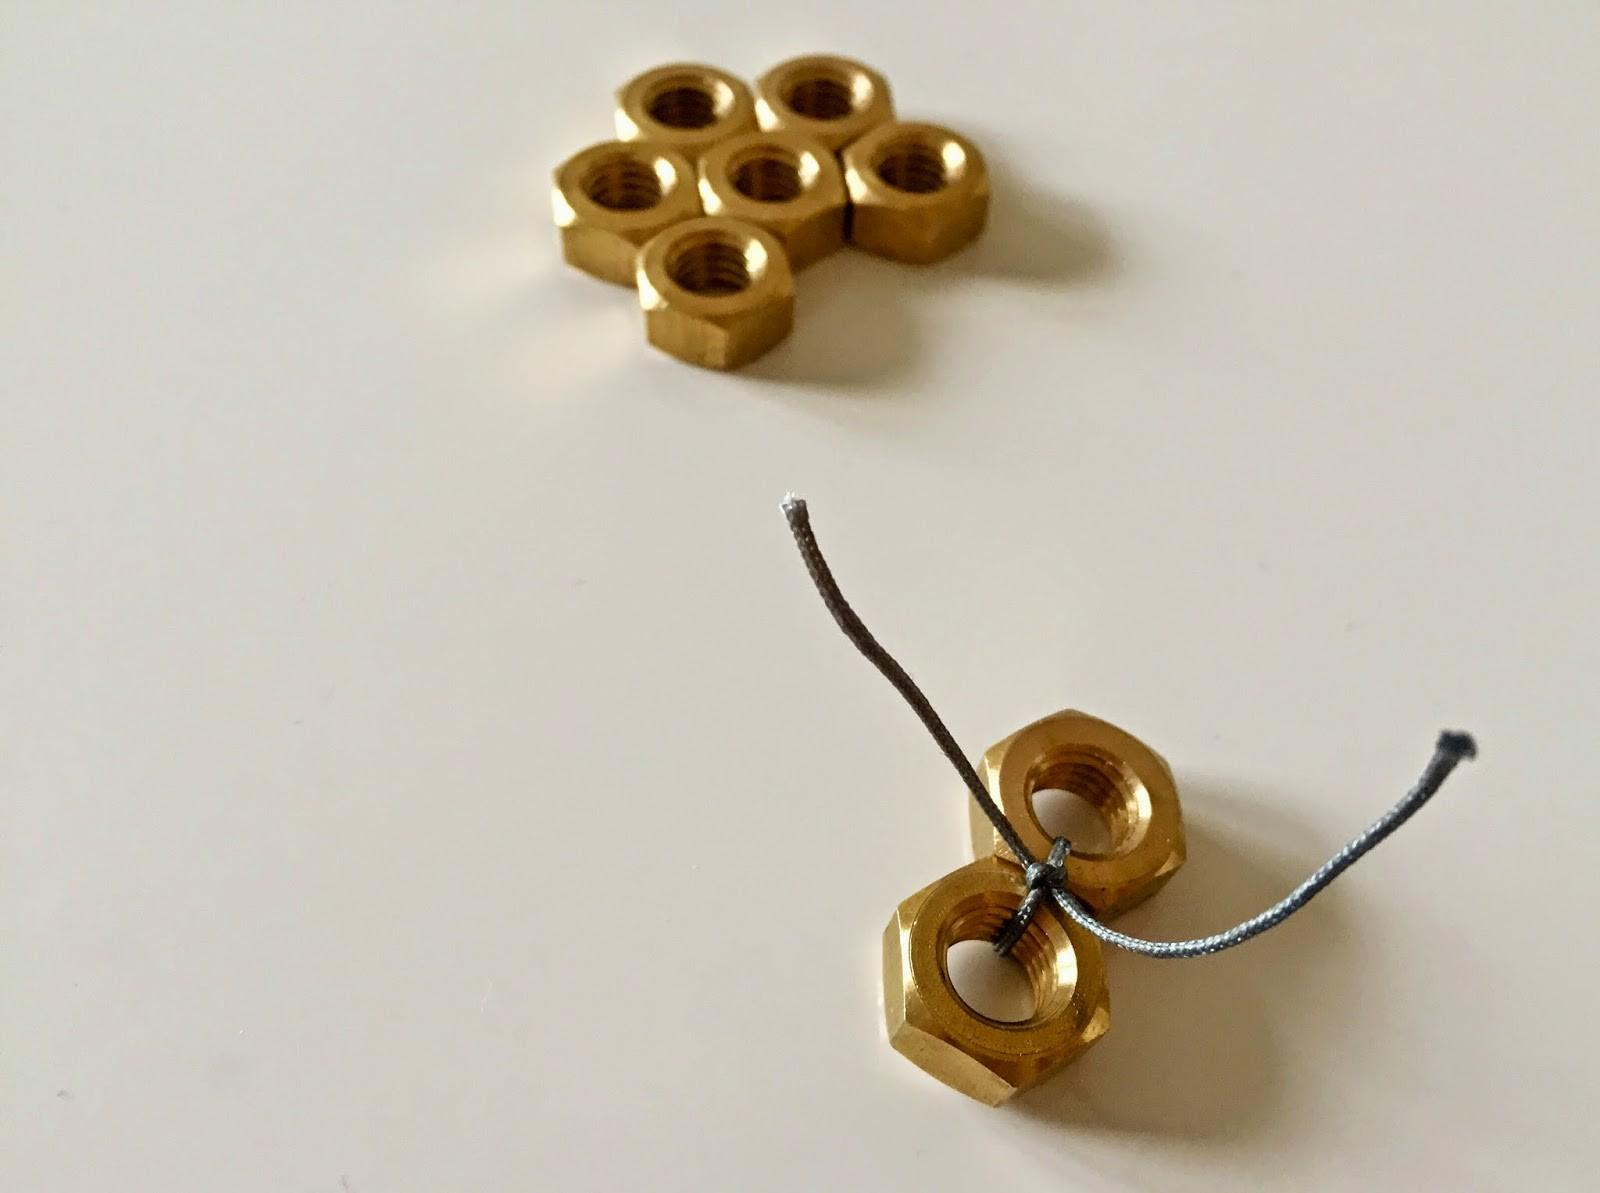 Our Creative Chaos Coffee Diy Hex Nut Necklace